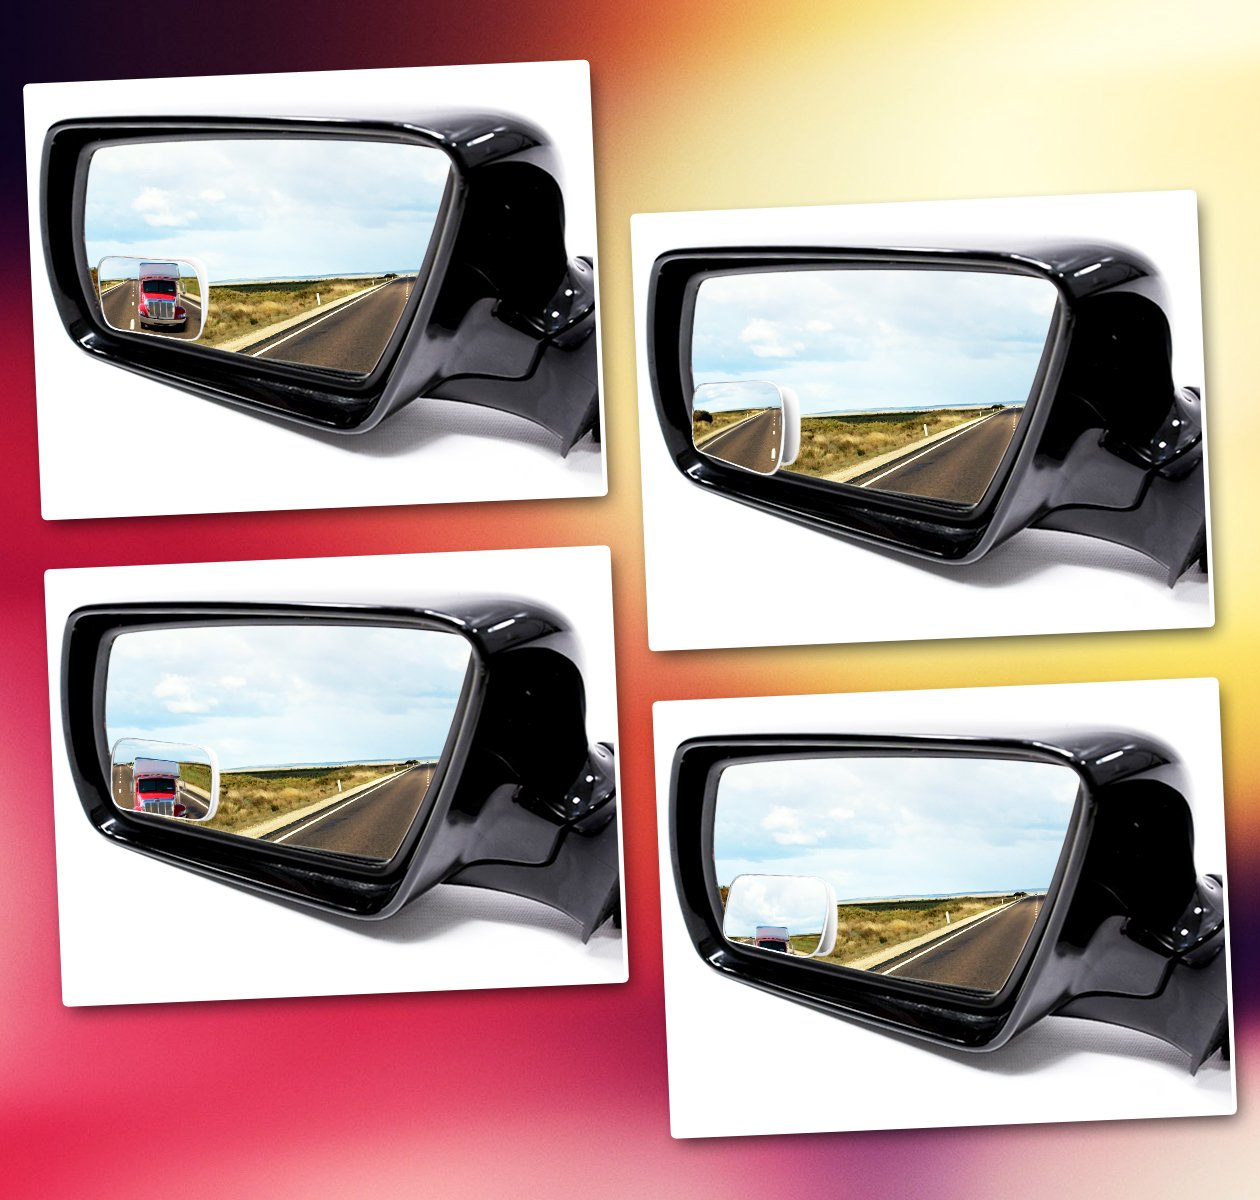 2-Pack Premium Quality Square Blind Spot Mirror Adjustable Stick-On Exterior Side Mirror for All Cars Motorcycles Trucks Snowmobiles Zone Tech Blind Spot Adjustable Square Mirrors